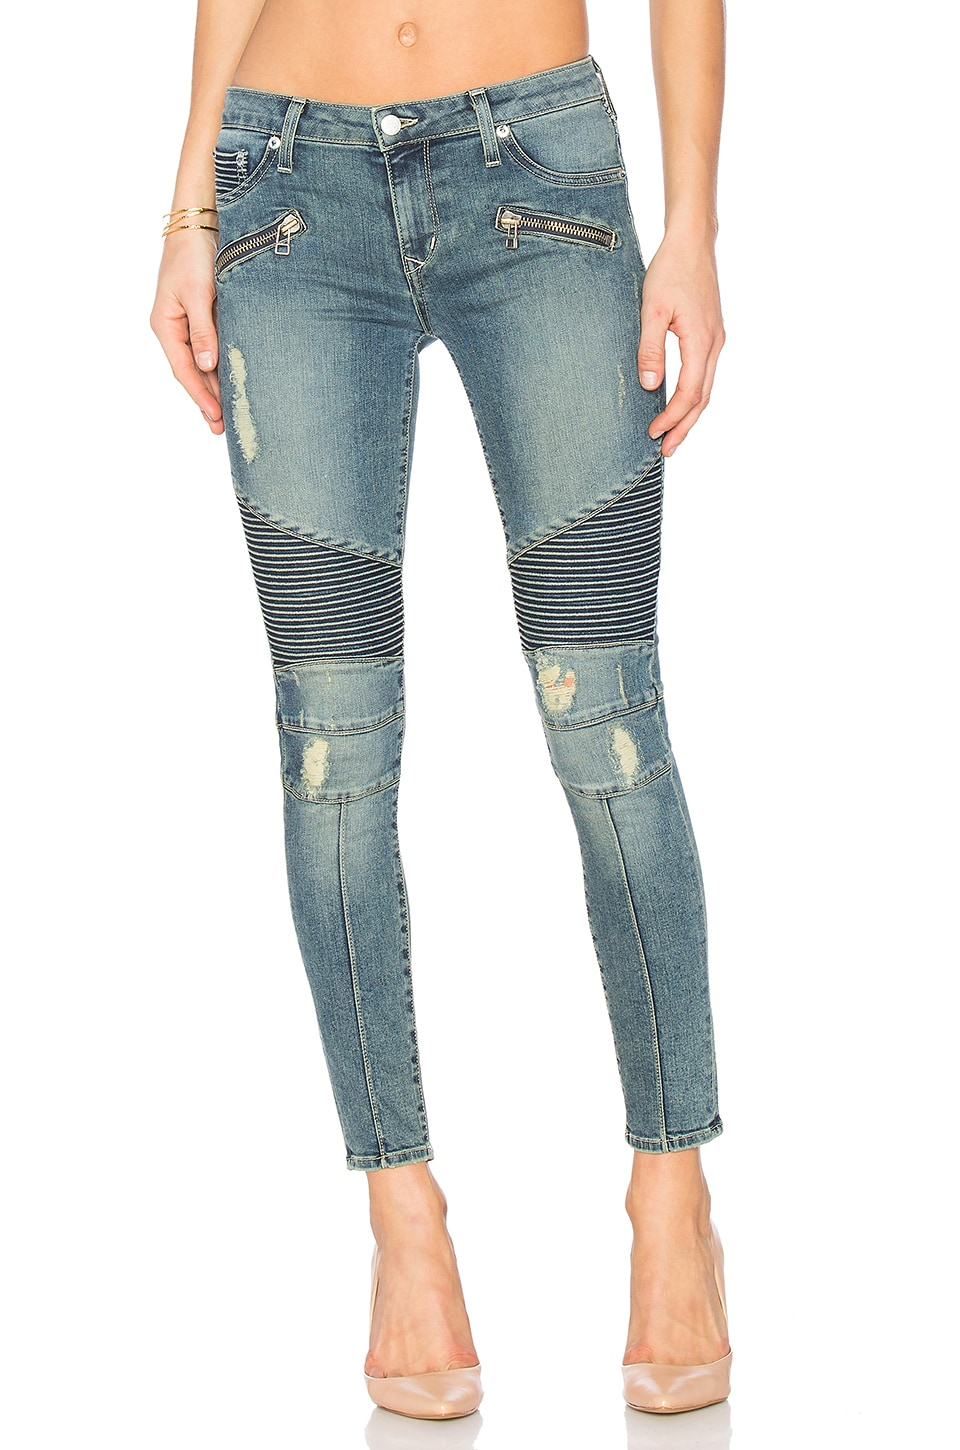 Lovers + Friends x REVOLVE PETITE Aaron Moto Skinny Jean in Culver